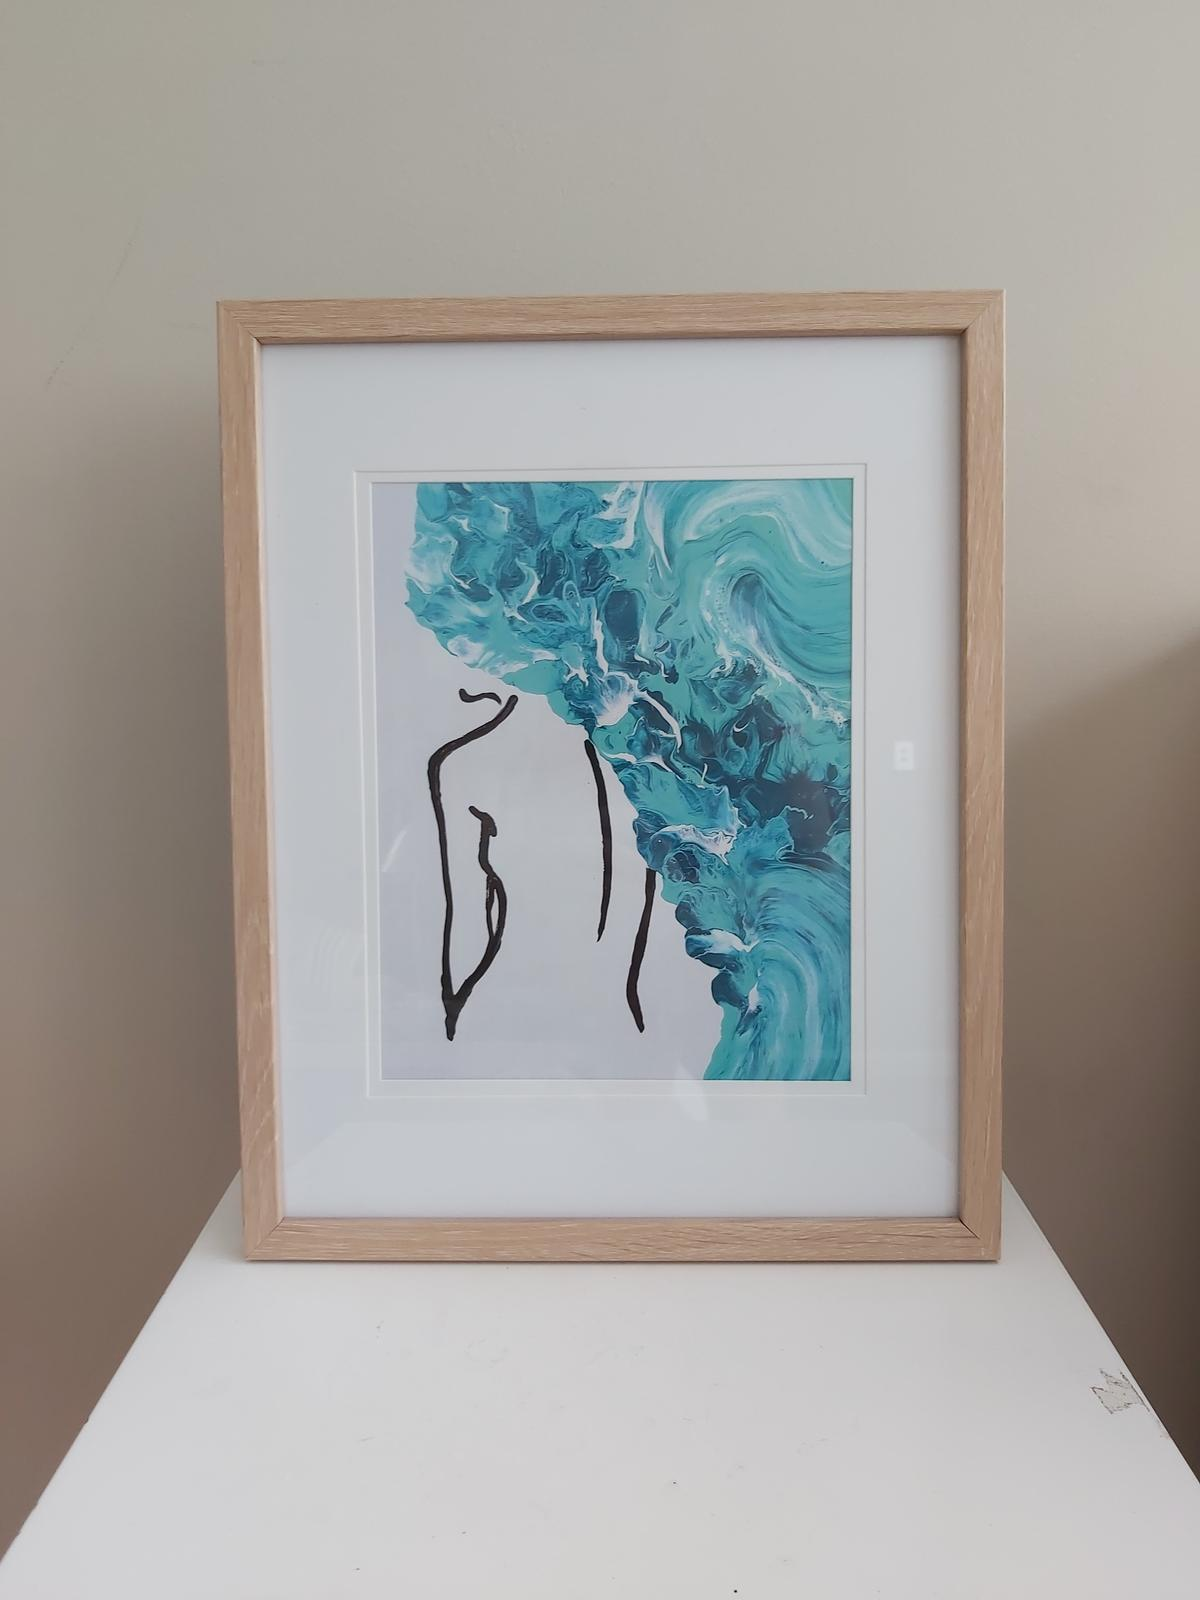 Ocean inspired framed arts